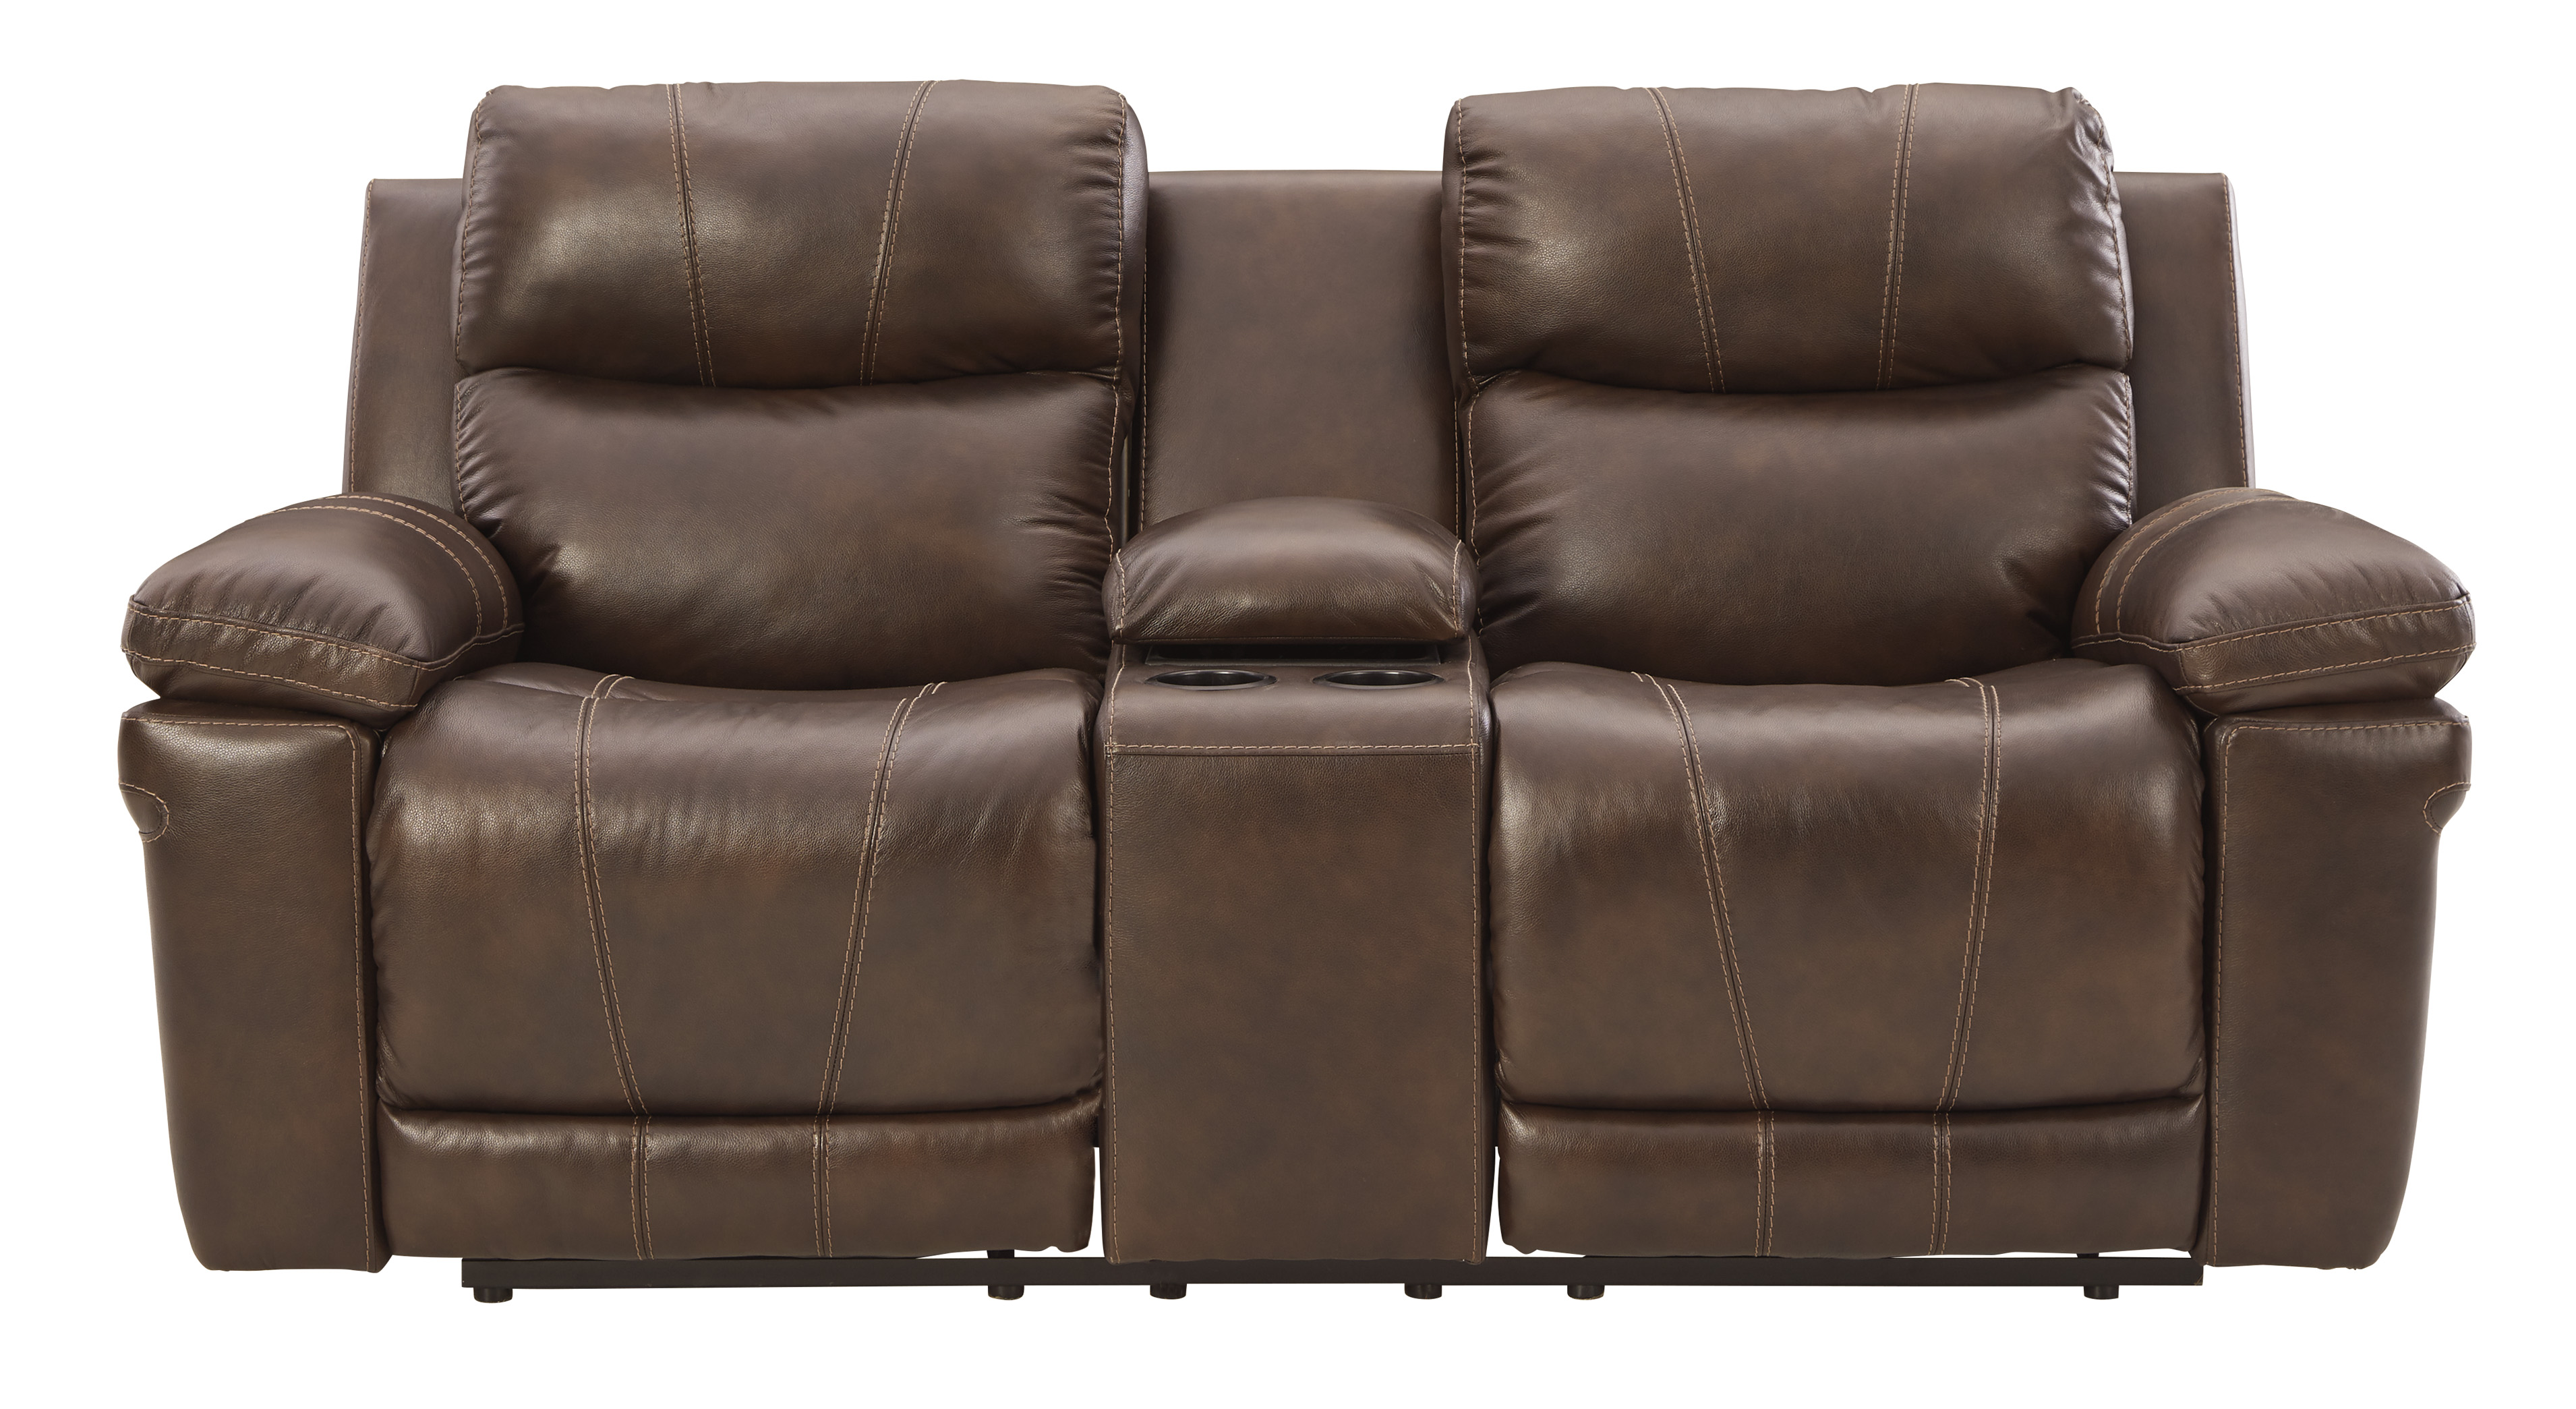 Edmar Power Reclining Loveseat with Console by Signature Design by Ashley at Standard Furniture